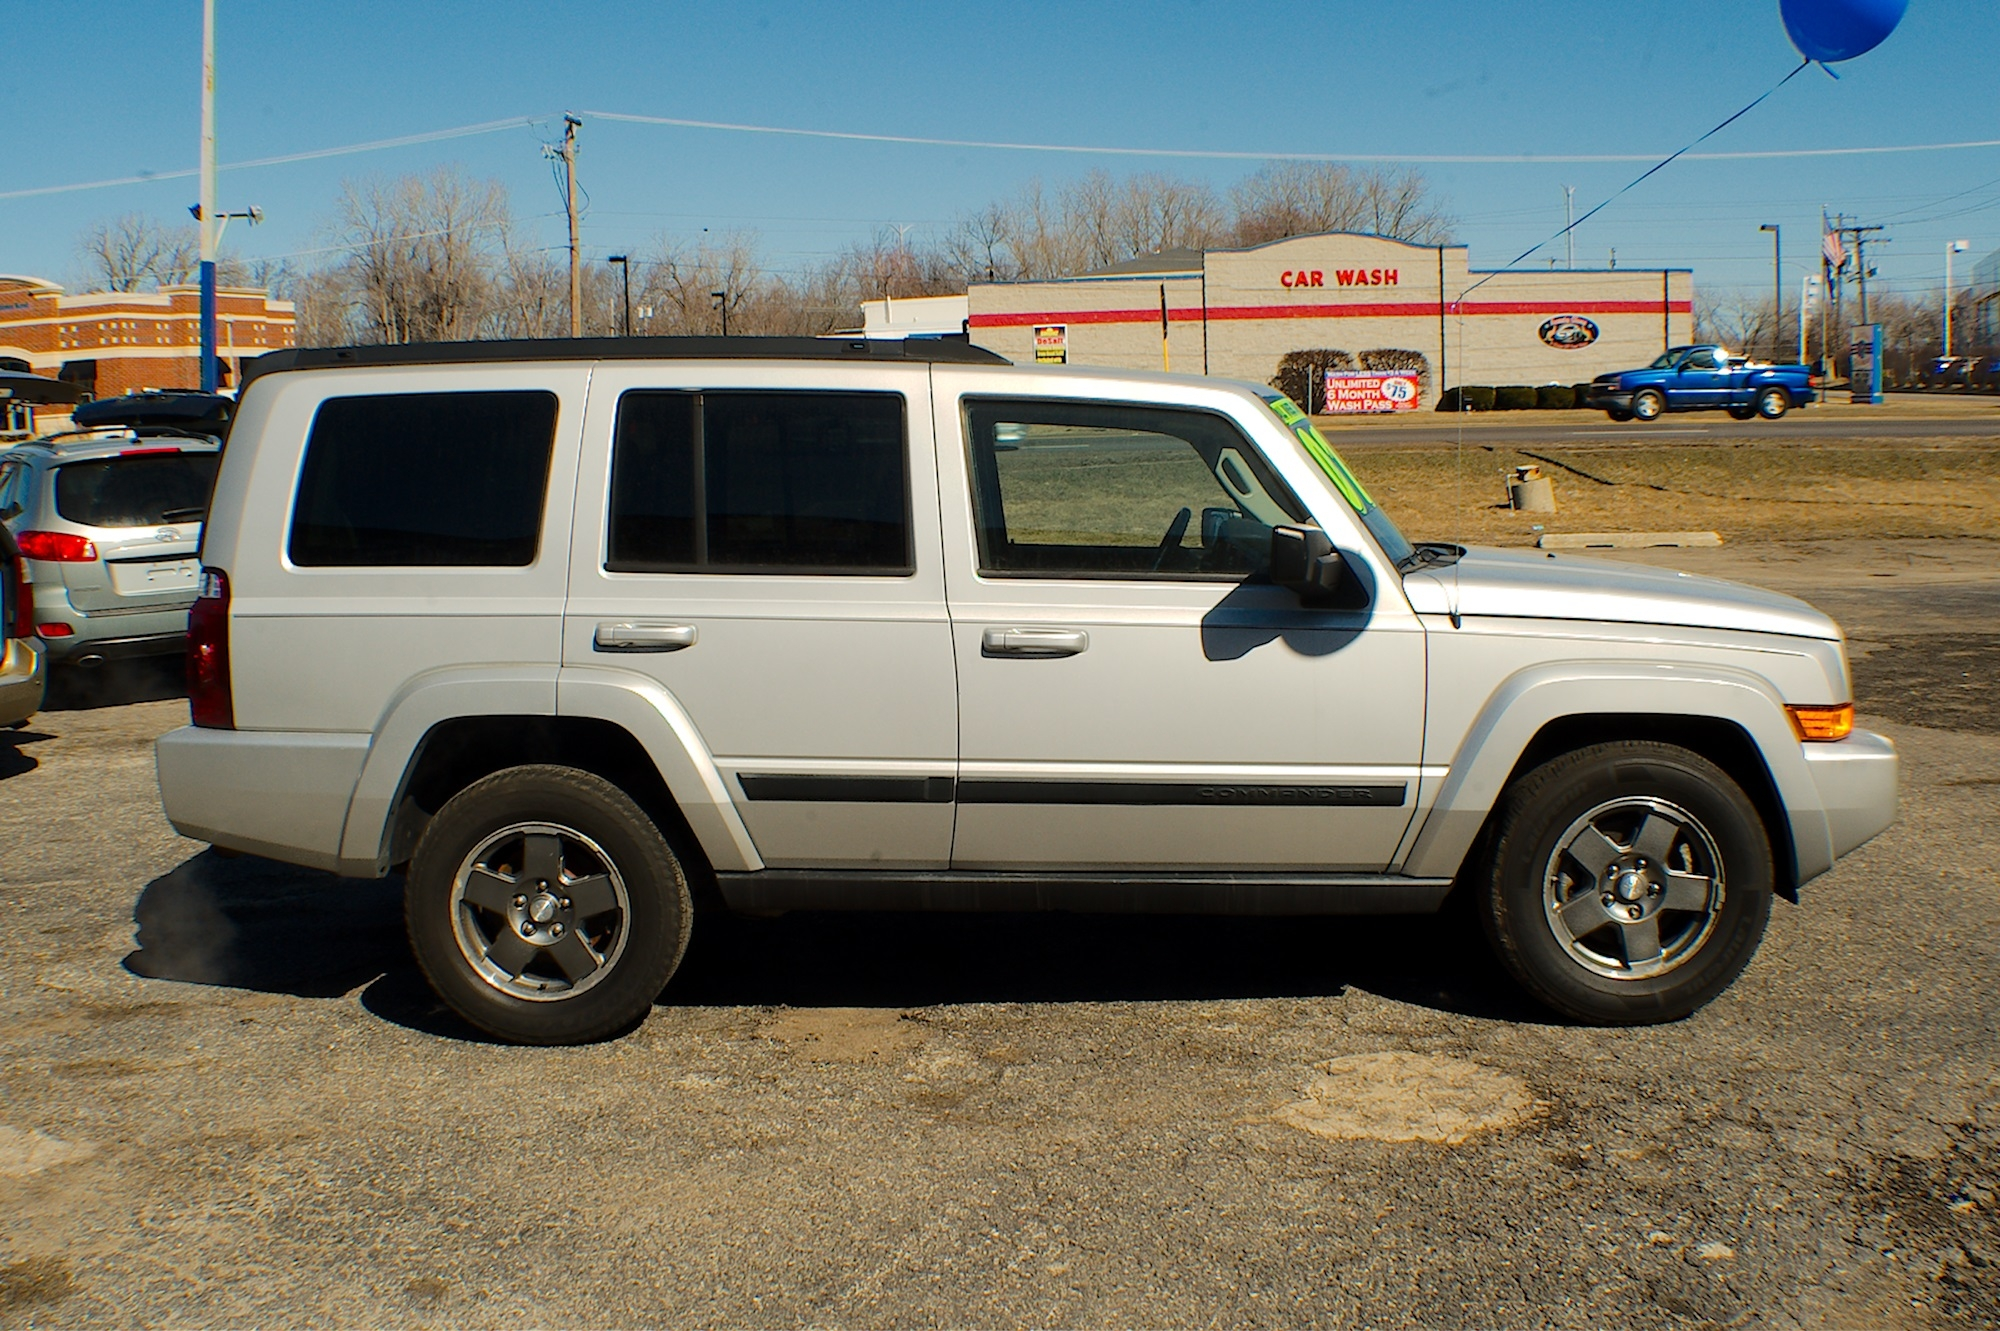 2007 Jeep Commander 4x4 Silver Flex fuel SUV Sale Buffalo Grove Deerfield Fox Lake Antioch